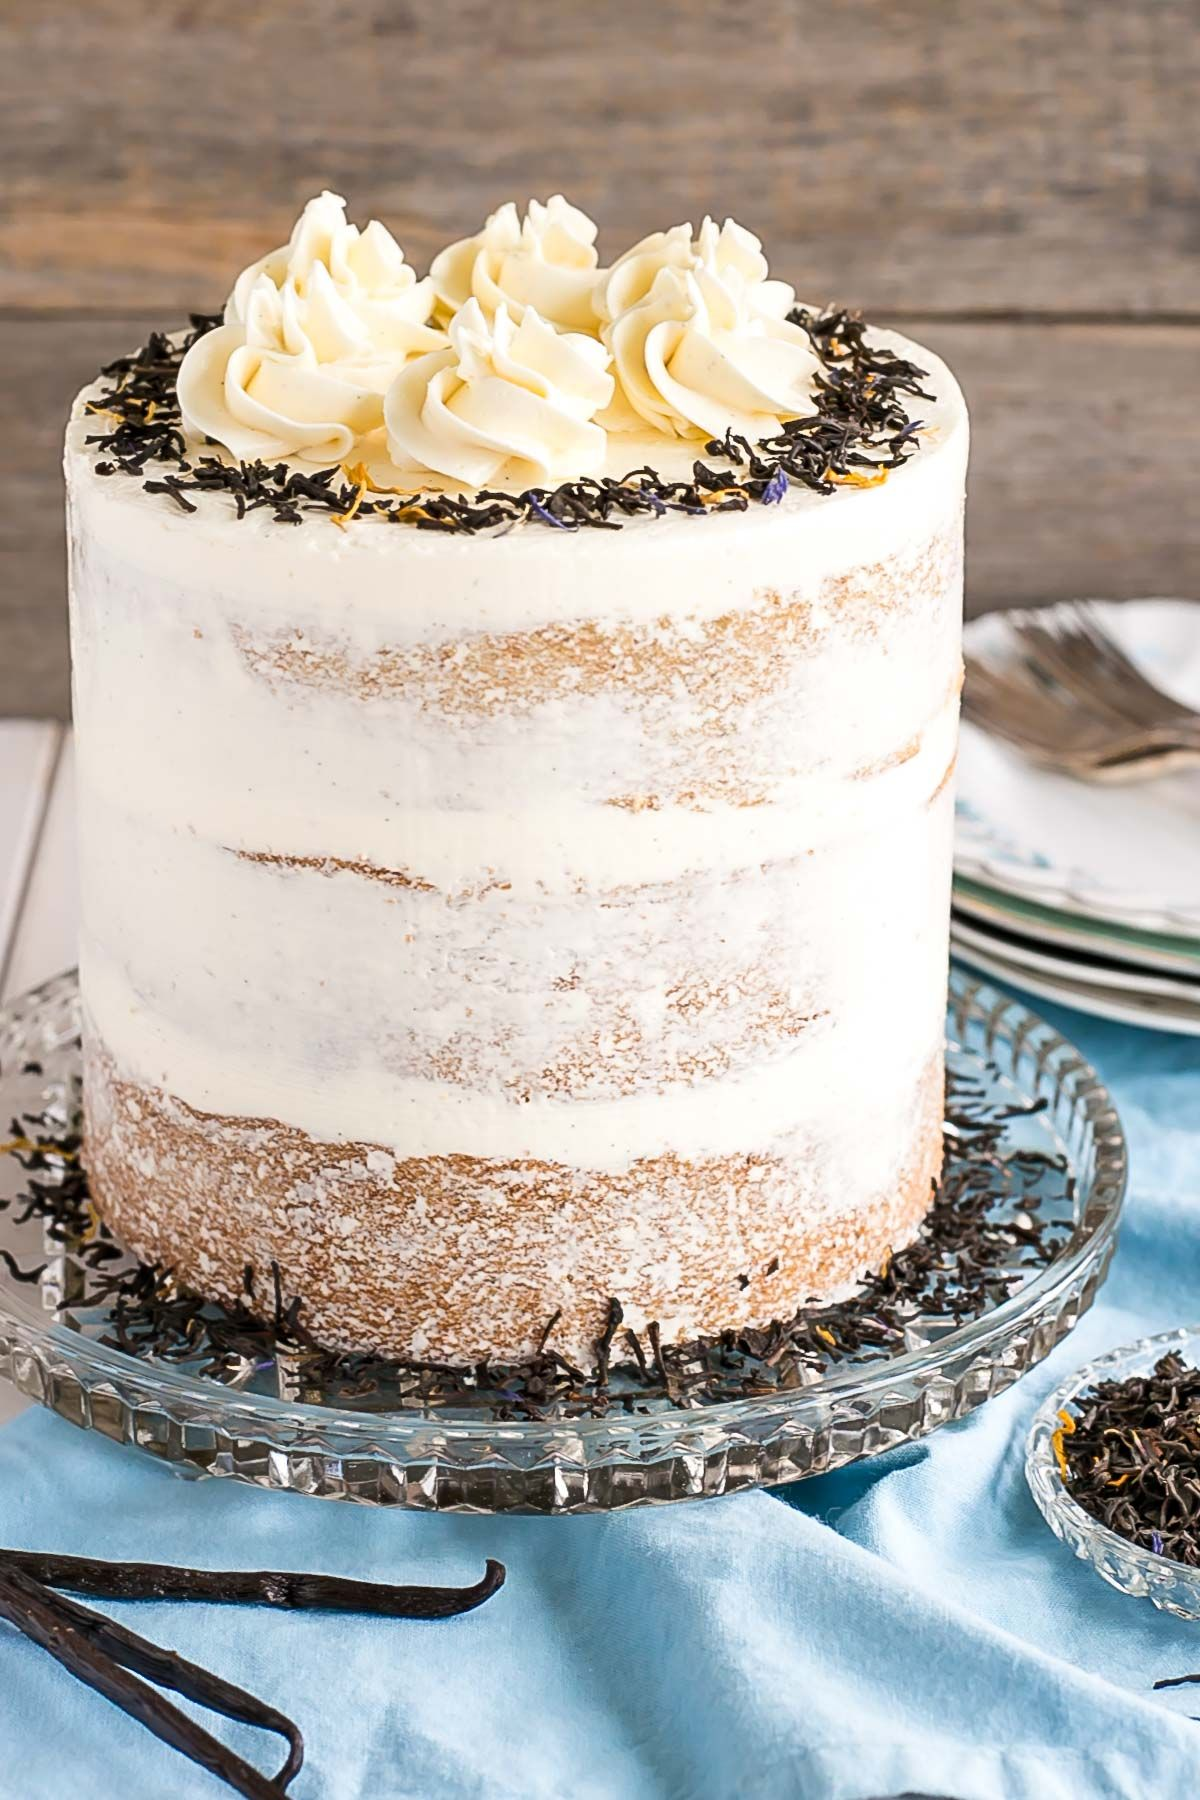 Earl grey infused cake layers paired with a silky vanilla